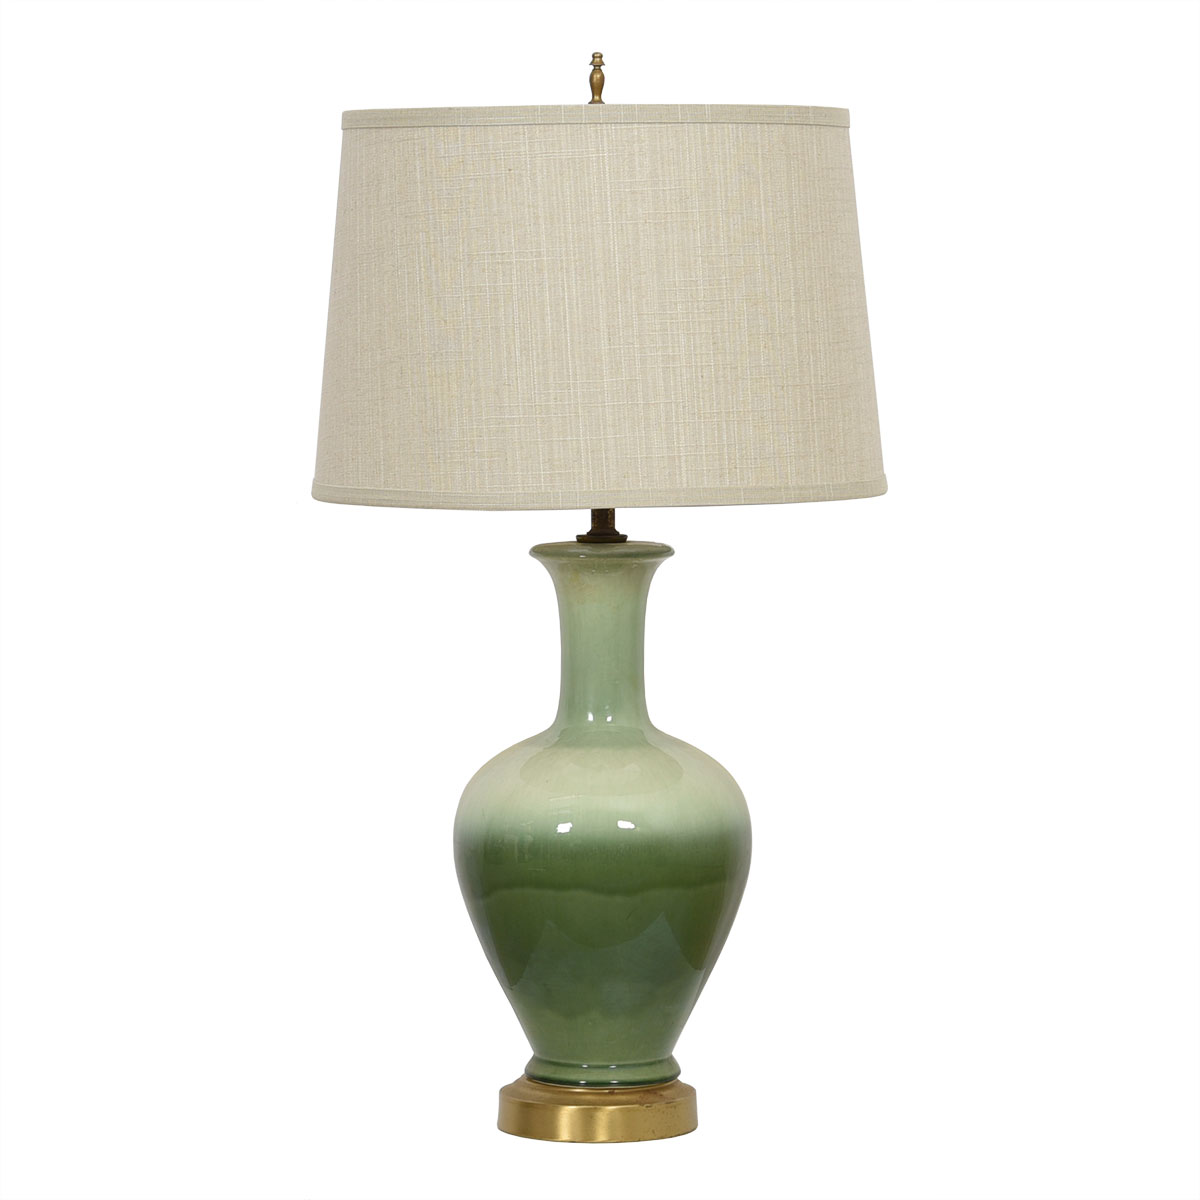 MCM Ceramic Table Lamp with Green Ombre Effect